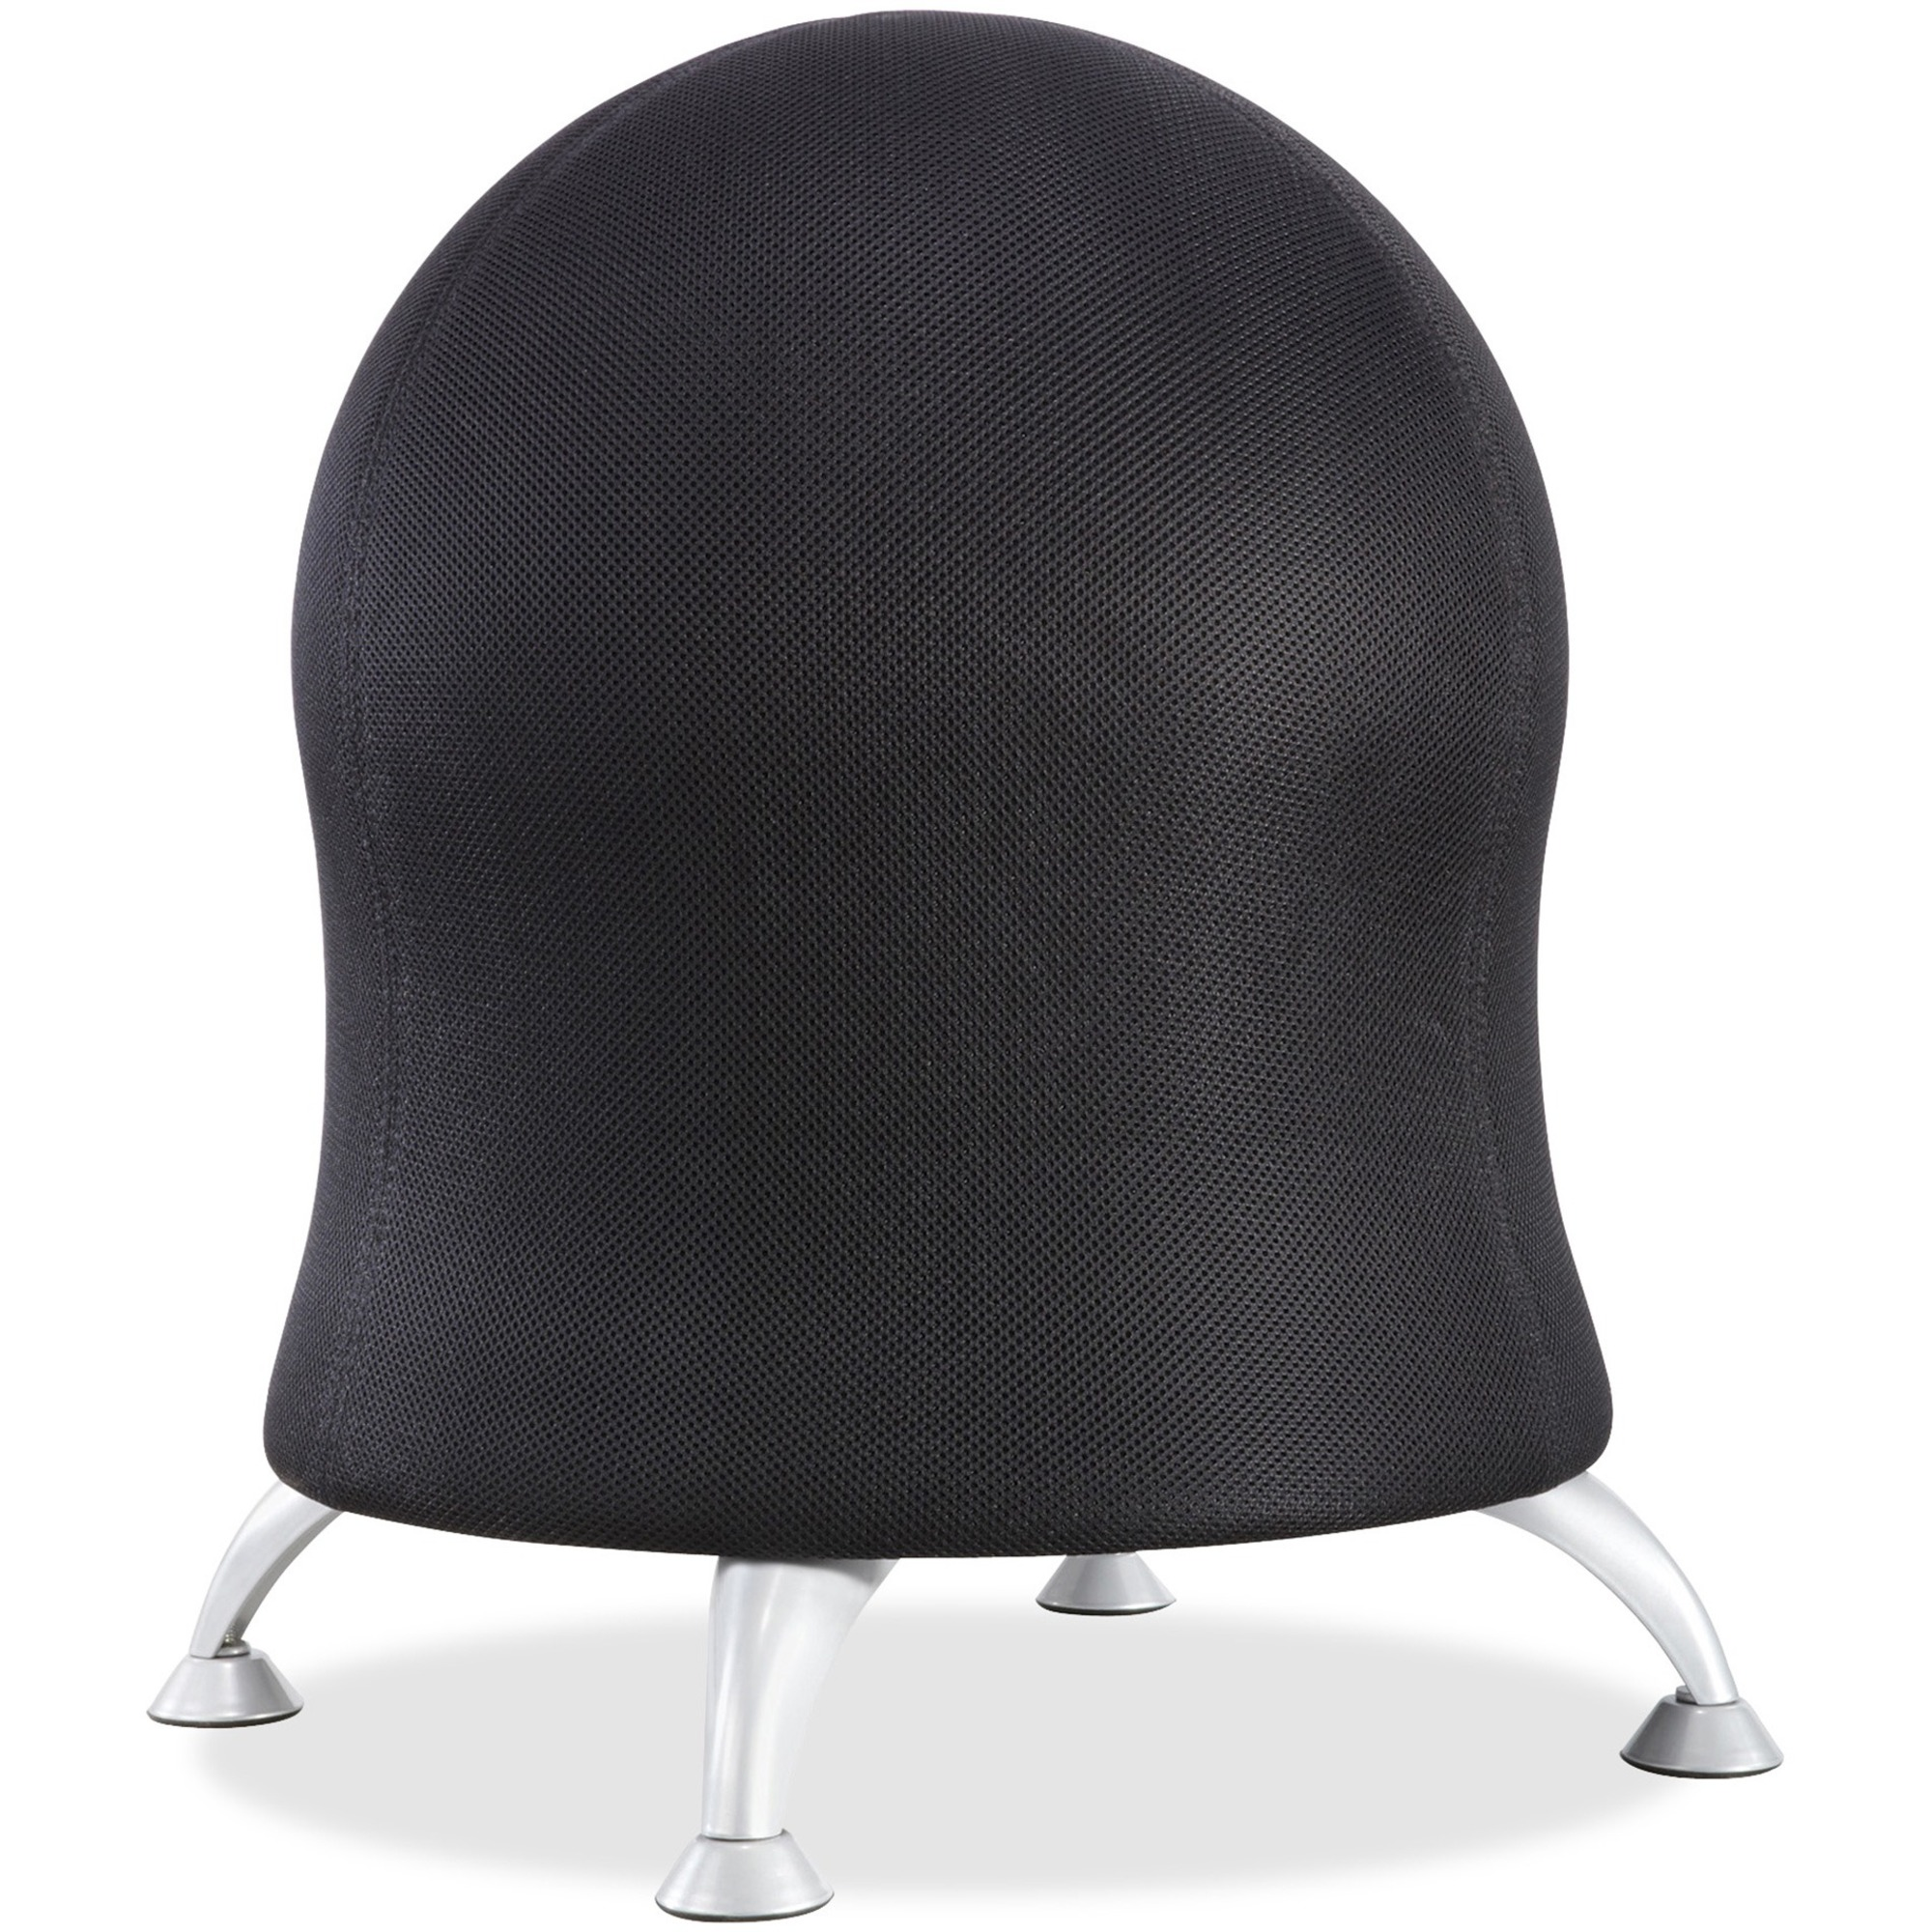 ball chair base only maccabee chairs website safco zenergy madill the office company